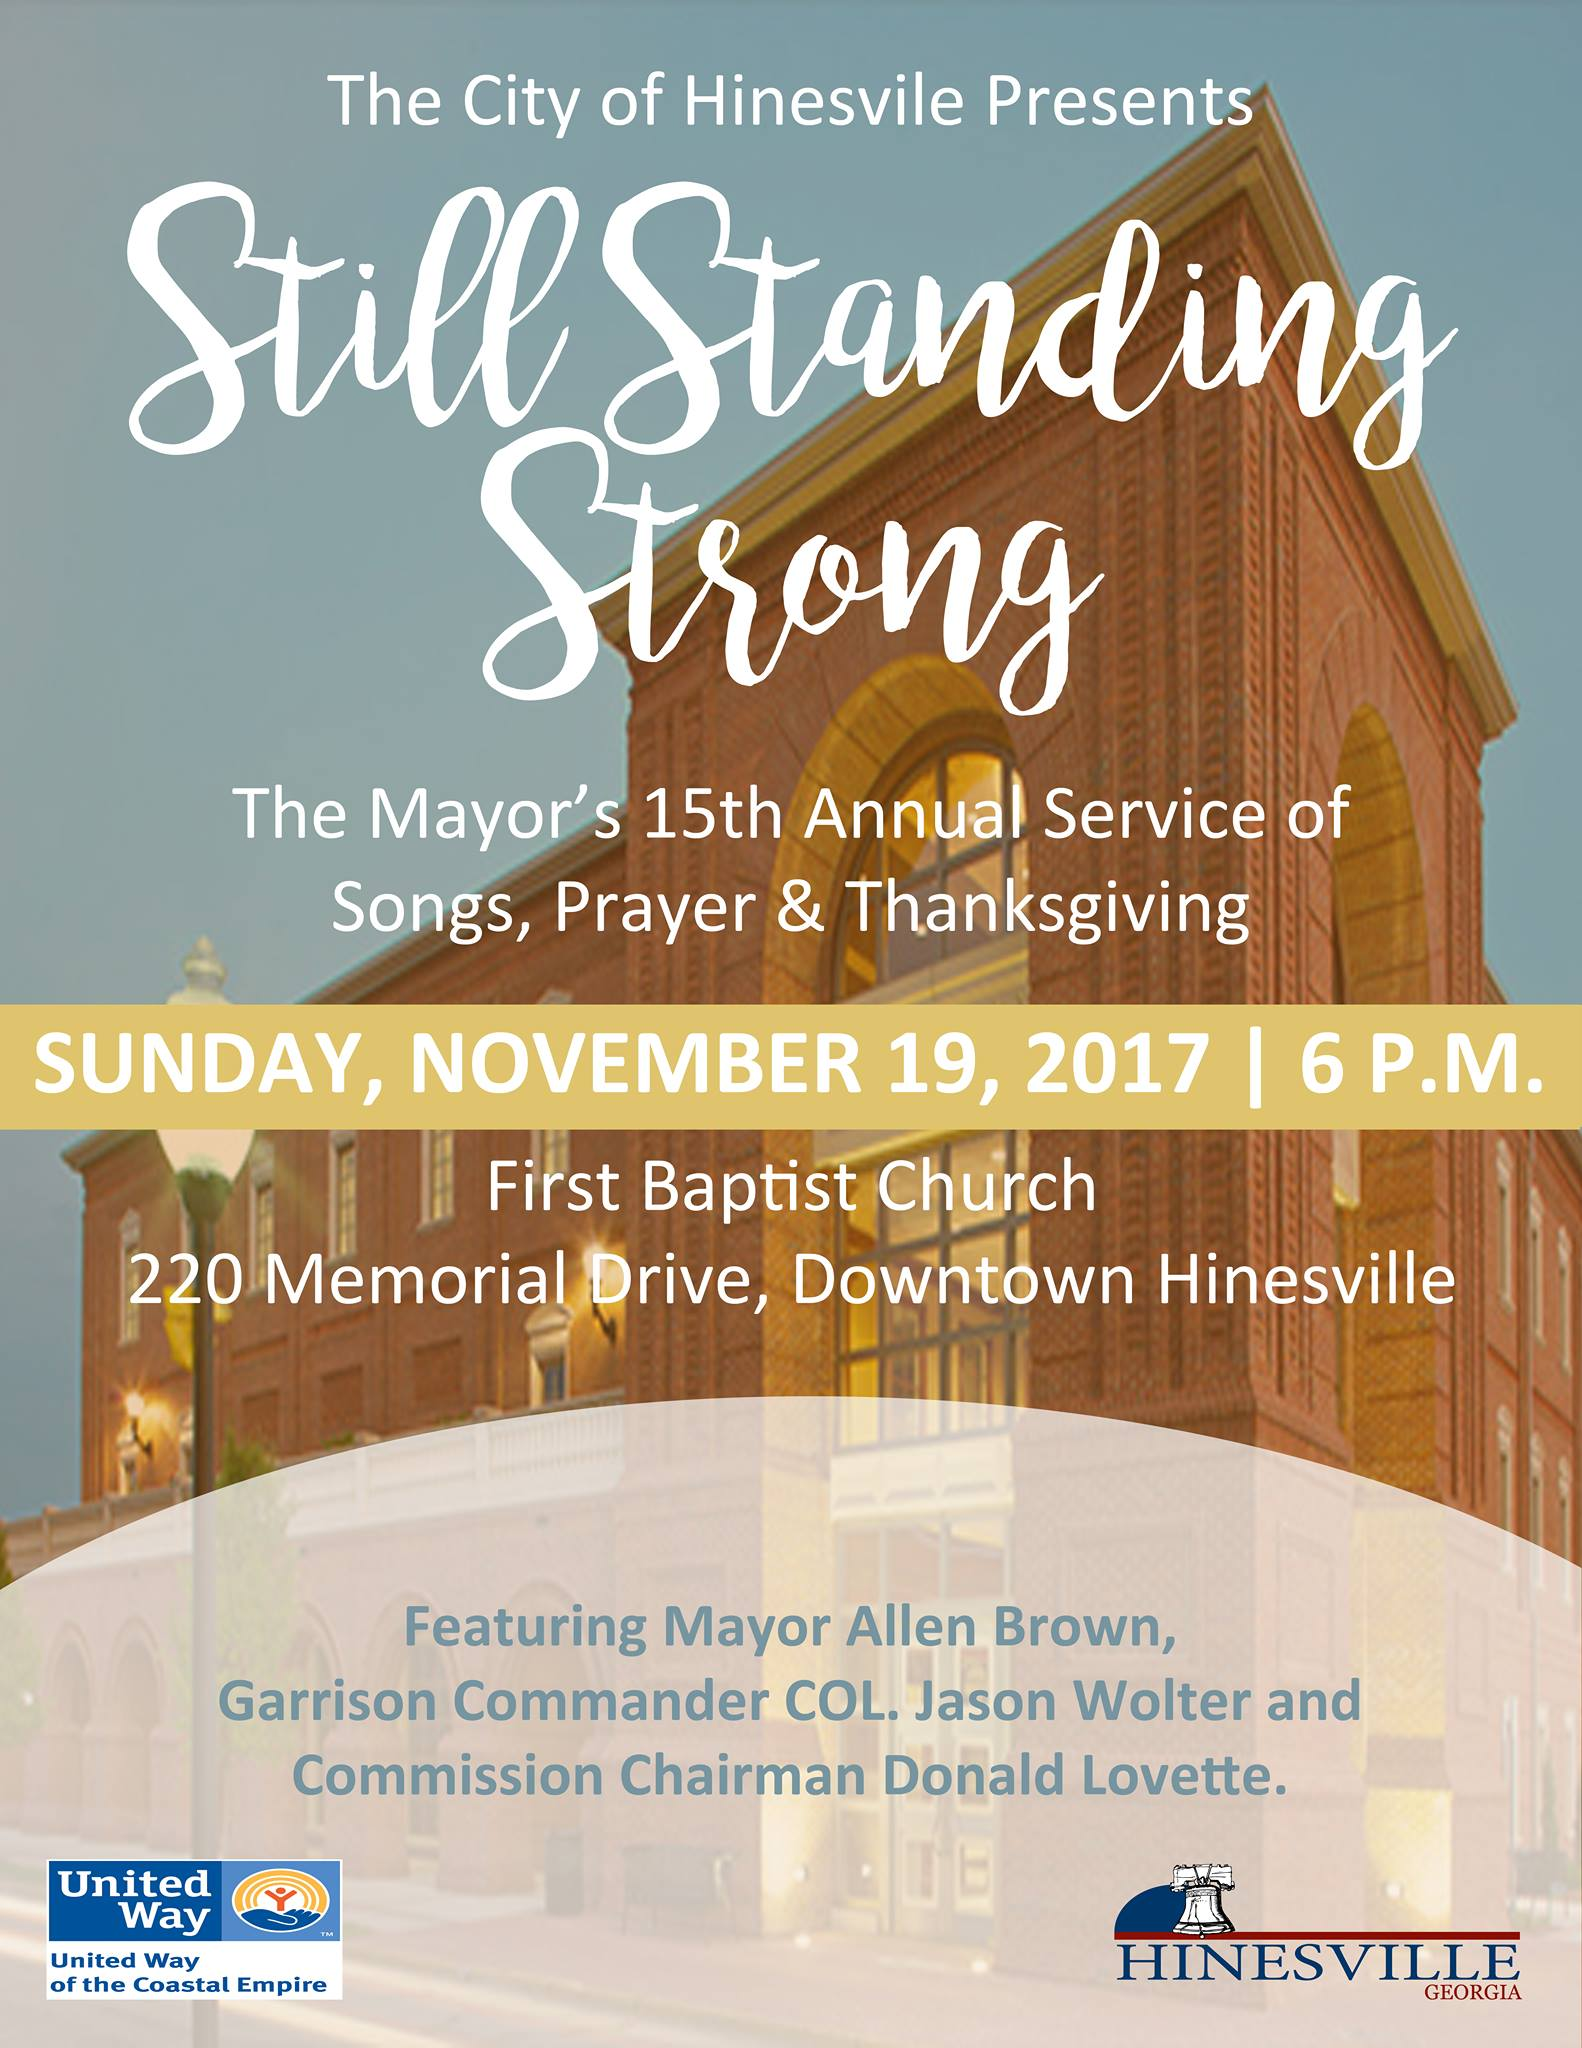 The City Of Hinesville Will Be Hosting The Mayors 15th Annual Service Of Songs Prayer And Thanksgiving A Treasured Tradition That Joins The Community